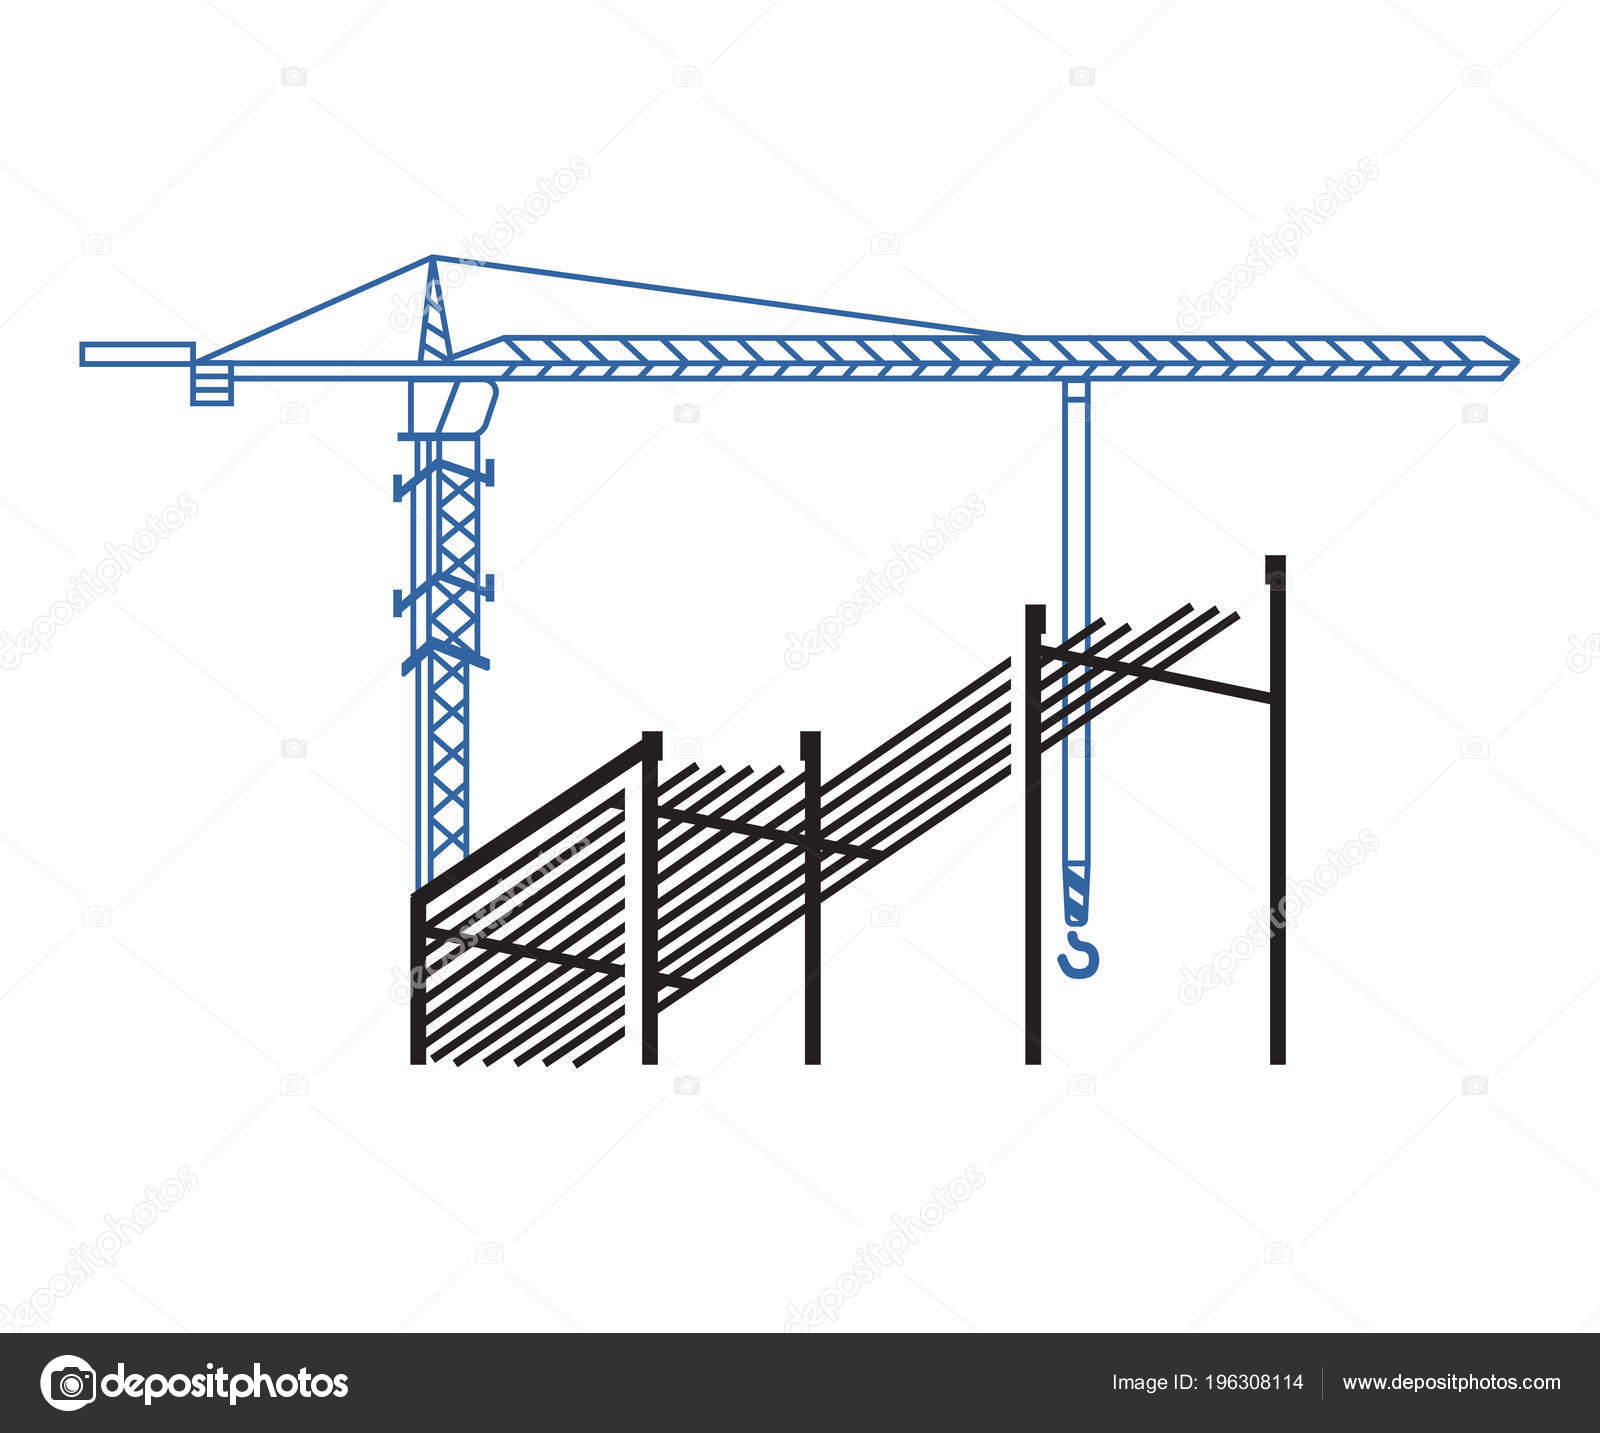 tower crane works background construction background crane Mobile Crane Diagram tower crane works background construction background crane construction site \u2014 stock vector